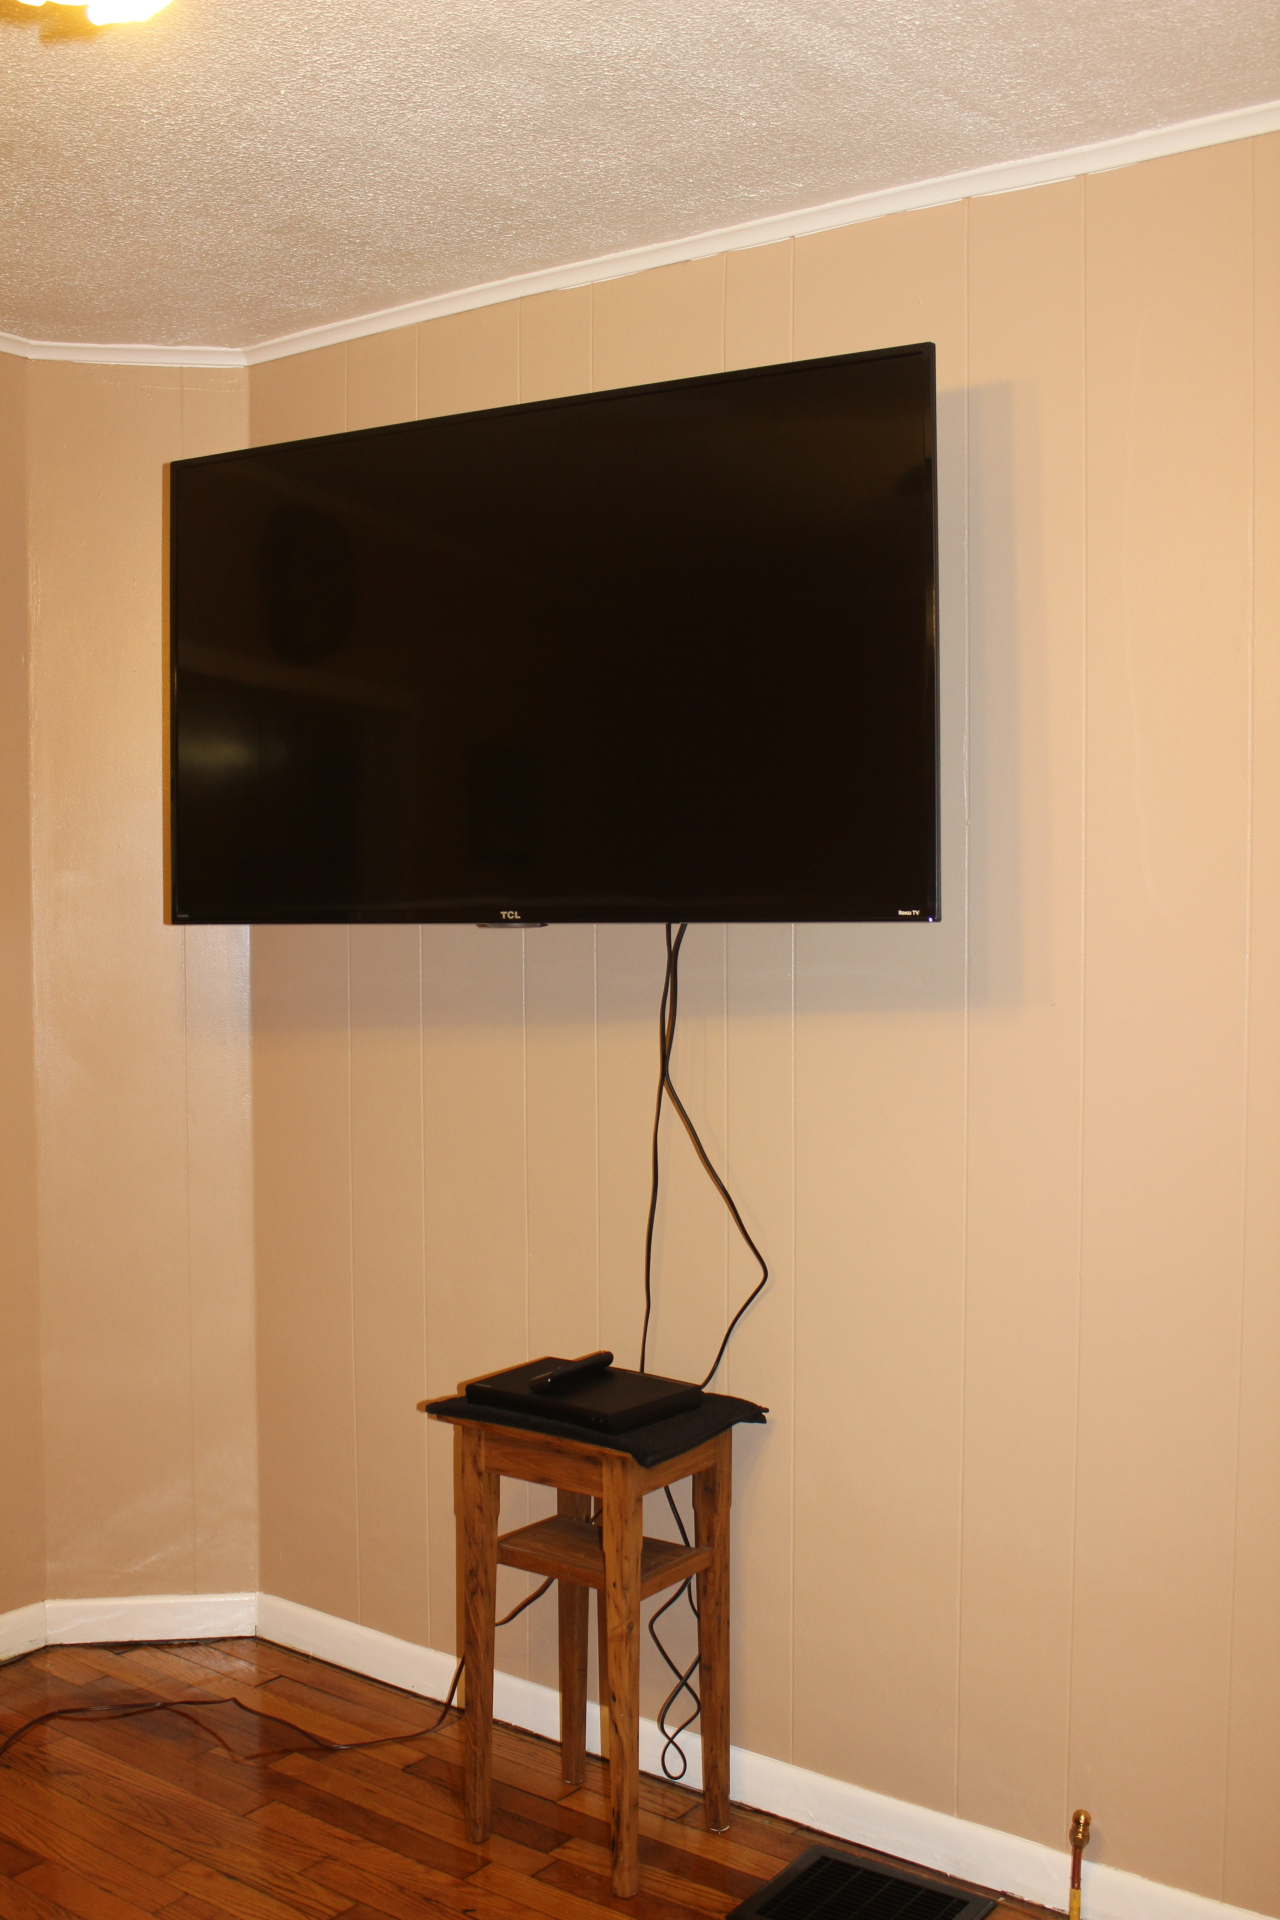 Large screen TV